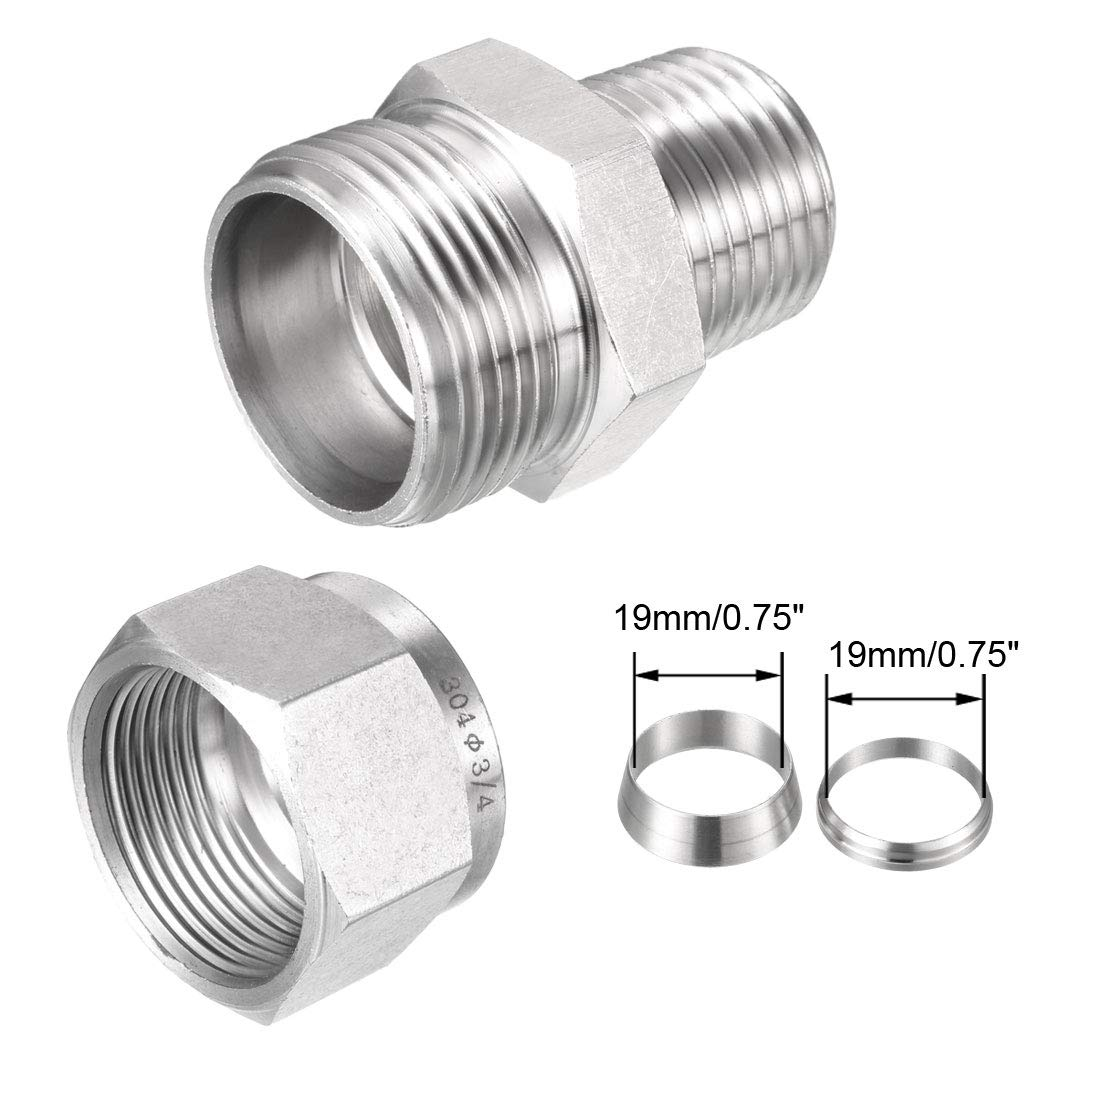 1//2 NPT Male x Ф1//2 Tube OD with Double Ferrules 3pcs Connector Adapter uxcell Compression Tube Fitting